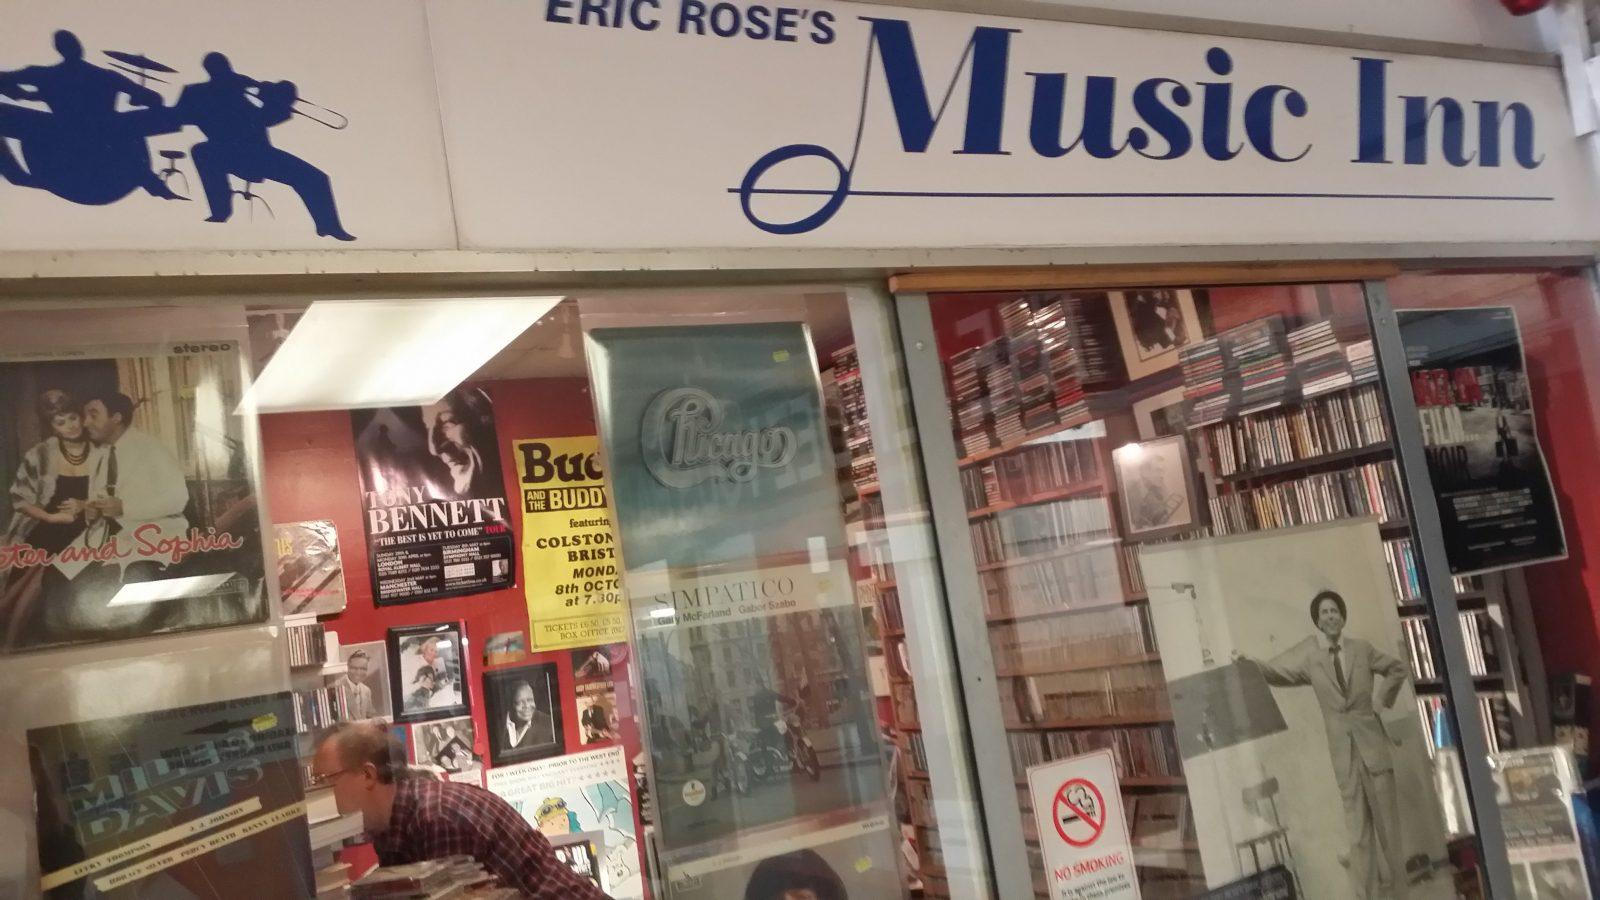 Music Inn West End Arcade